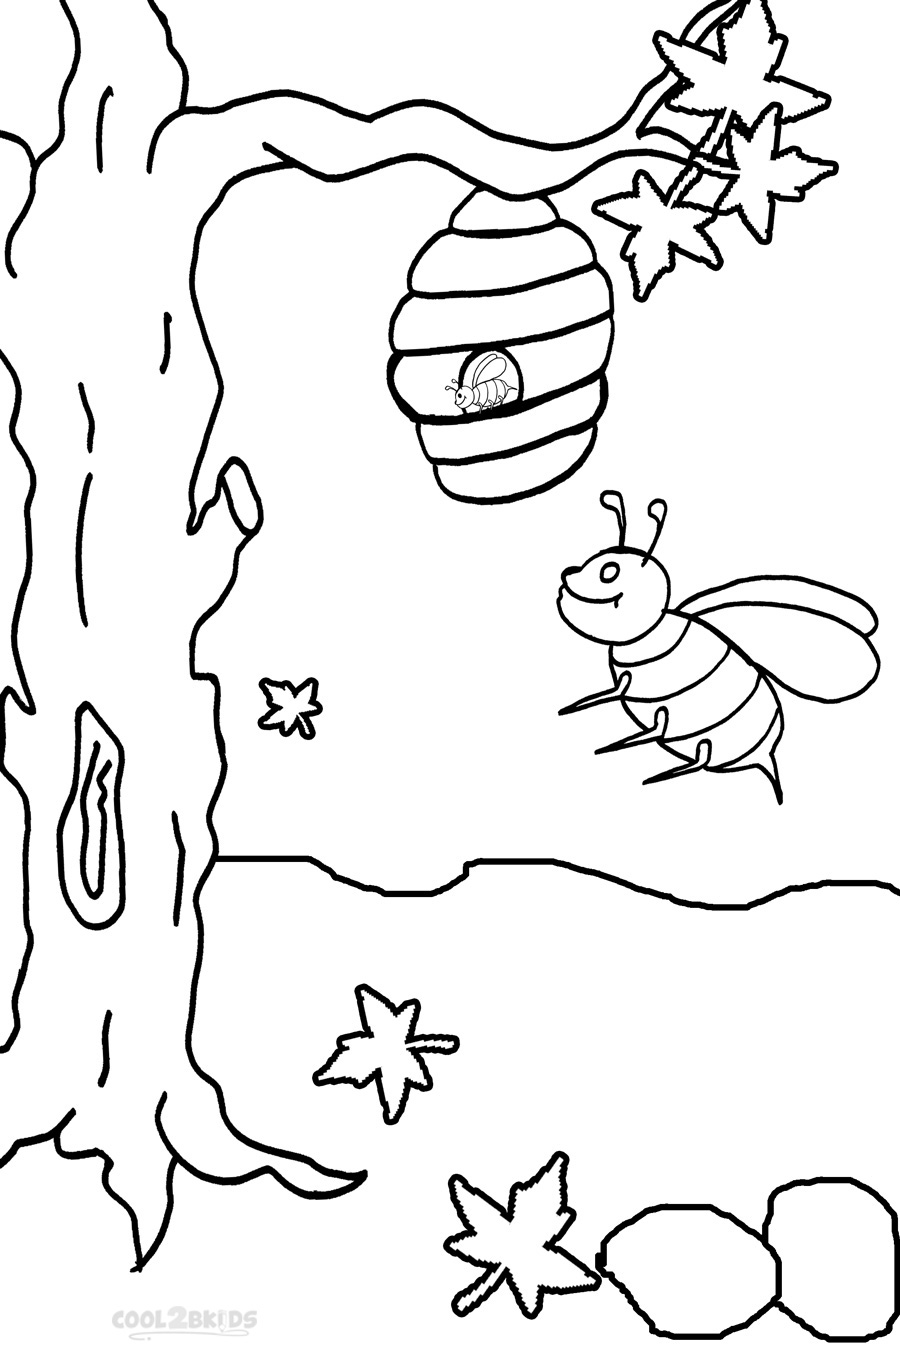 Free Printable Bumble Bee Coloring Pages Image